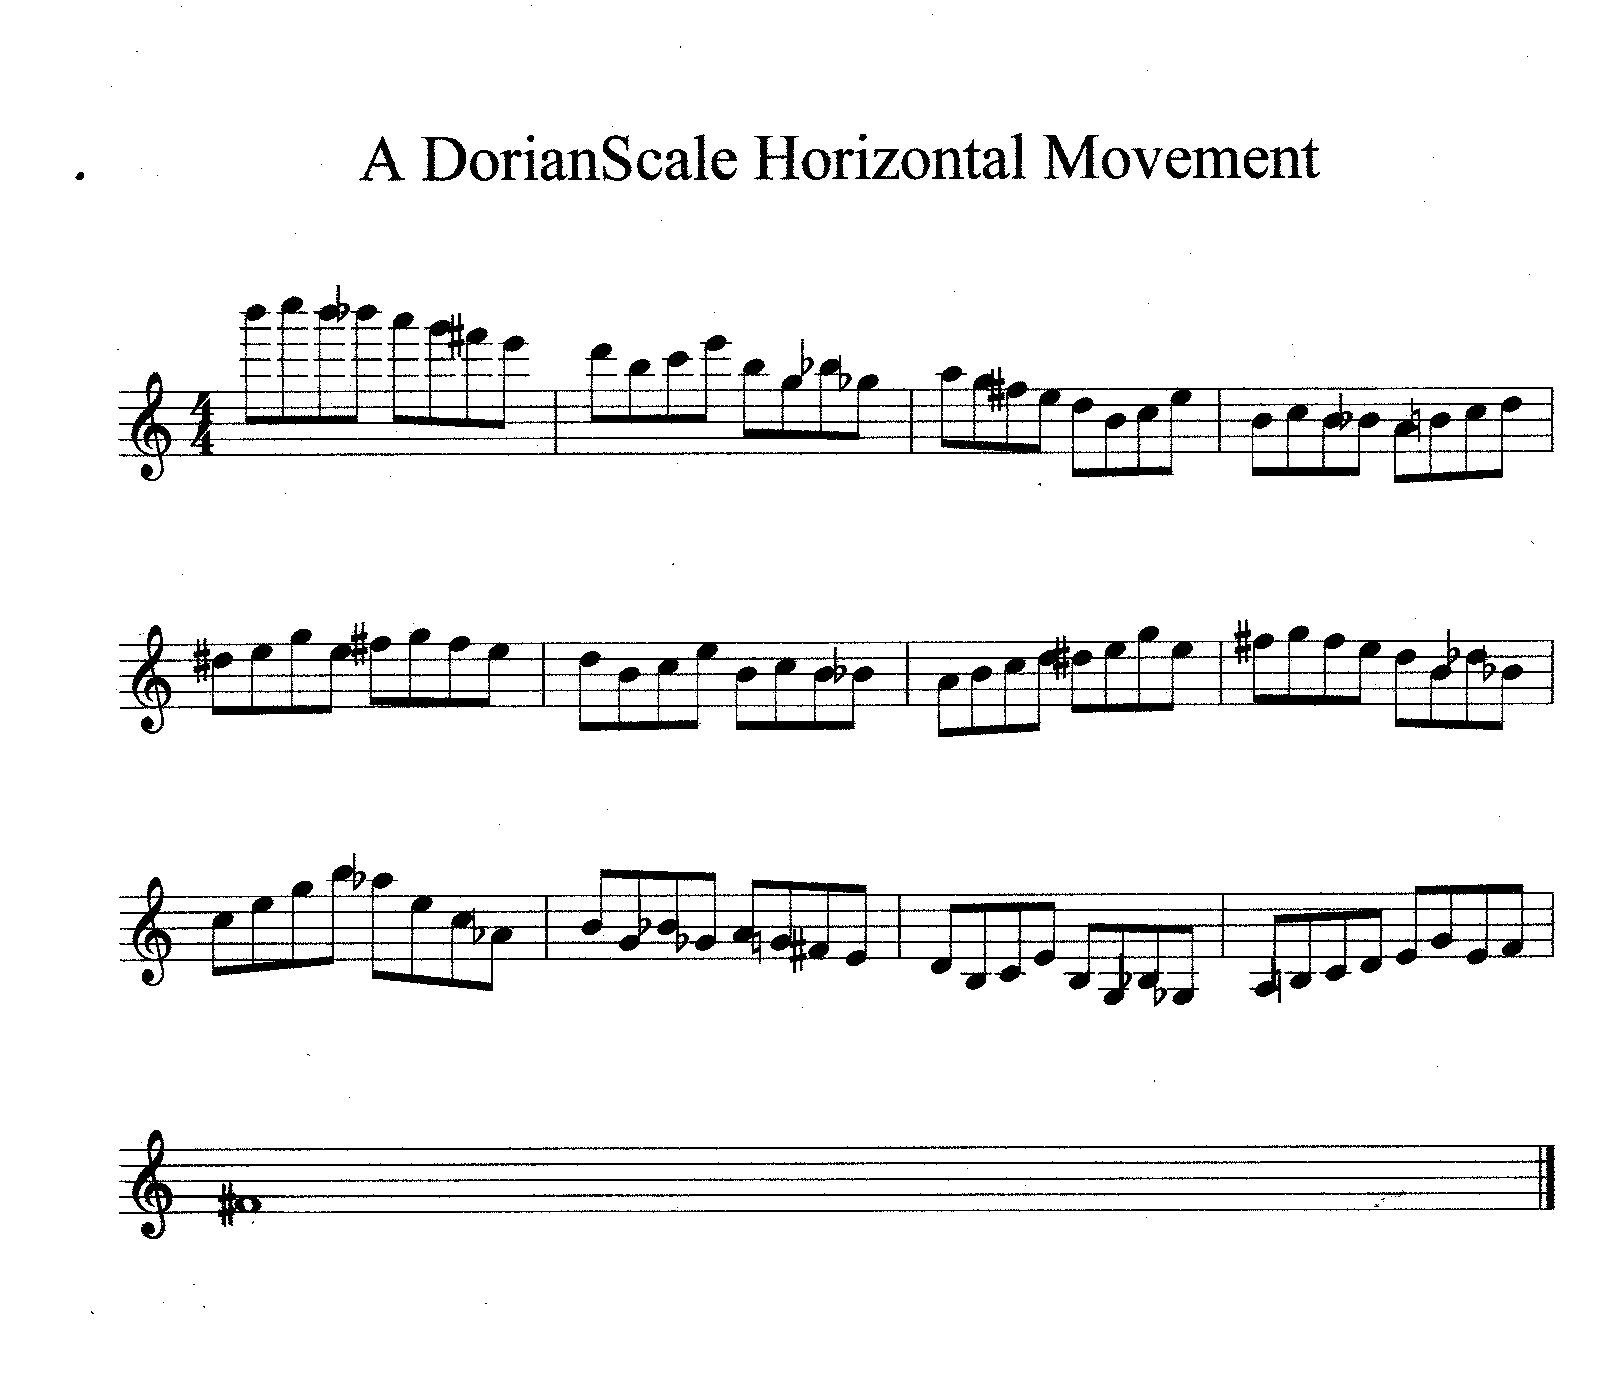 A DorianScale Horizontal Movement